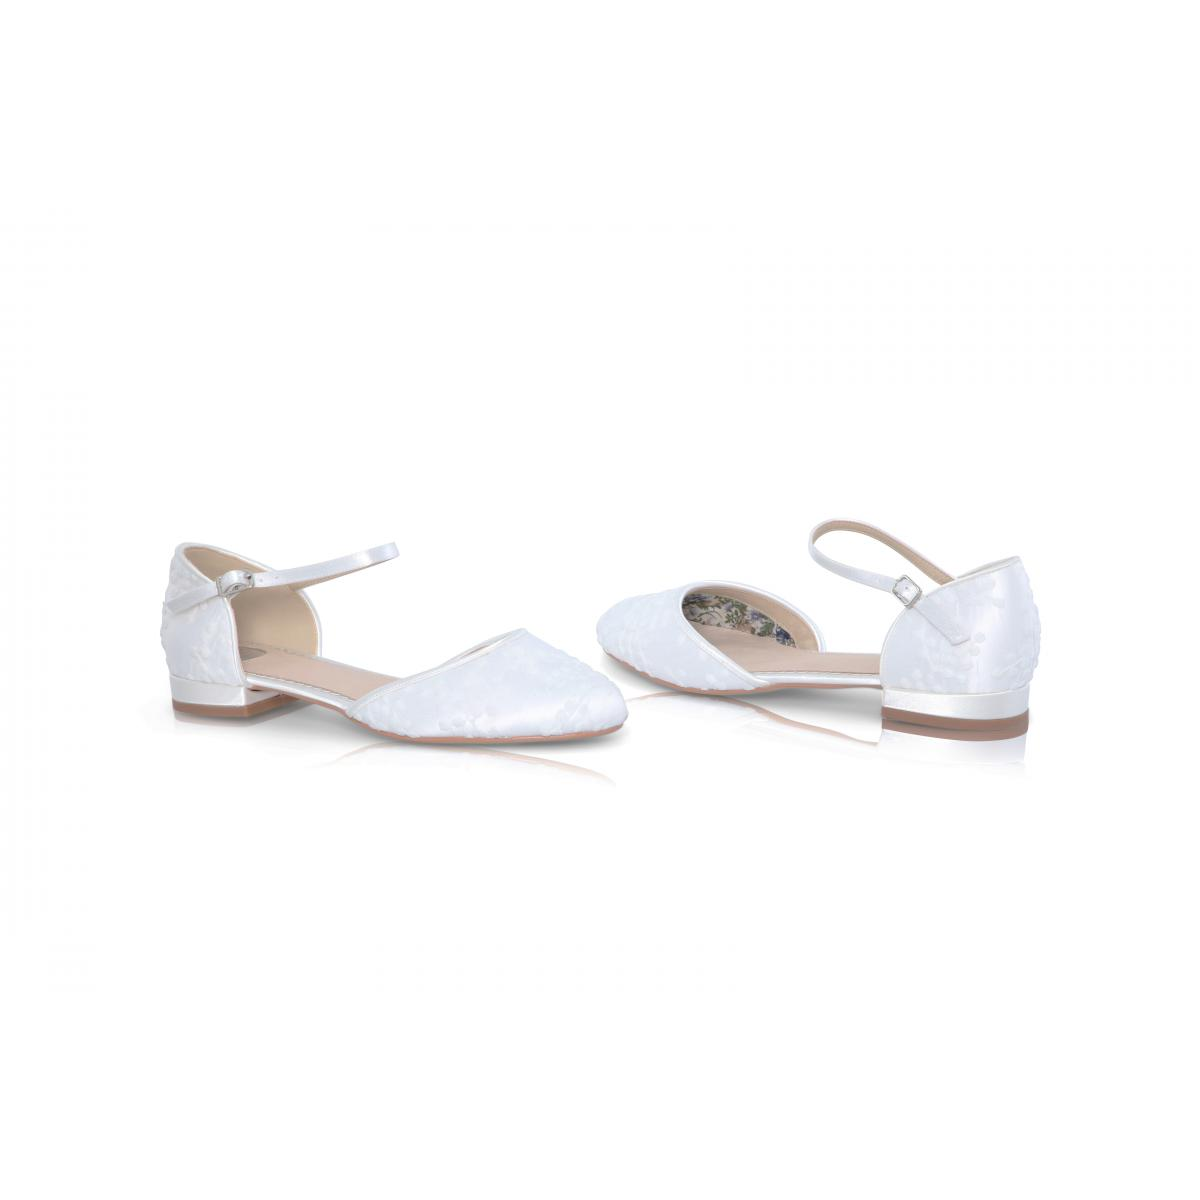 Perfect Bridal Verity Shoes - Ivory Lace 4